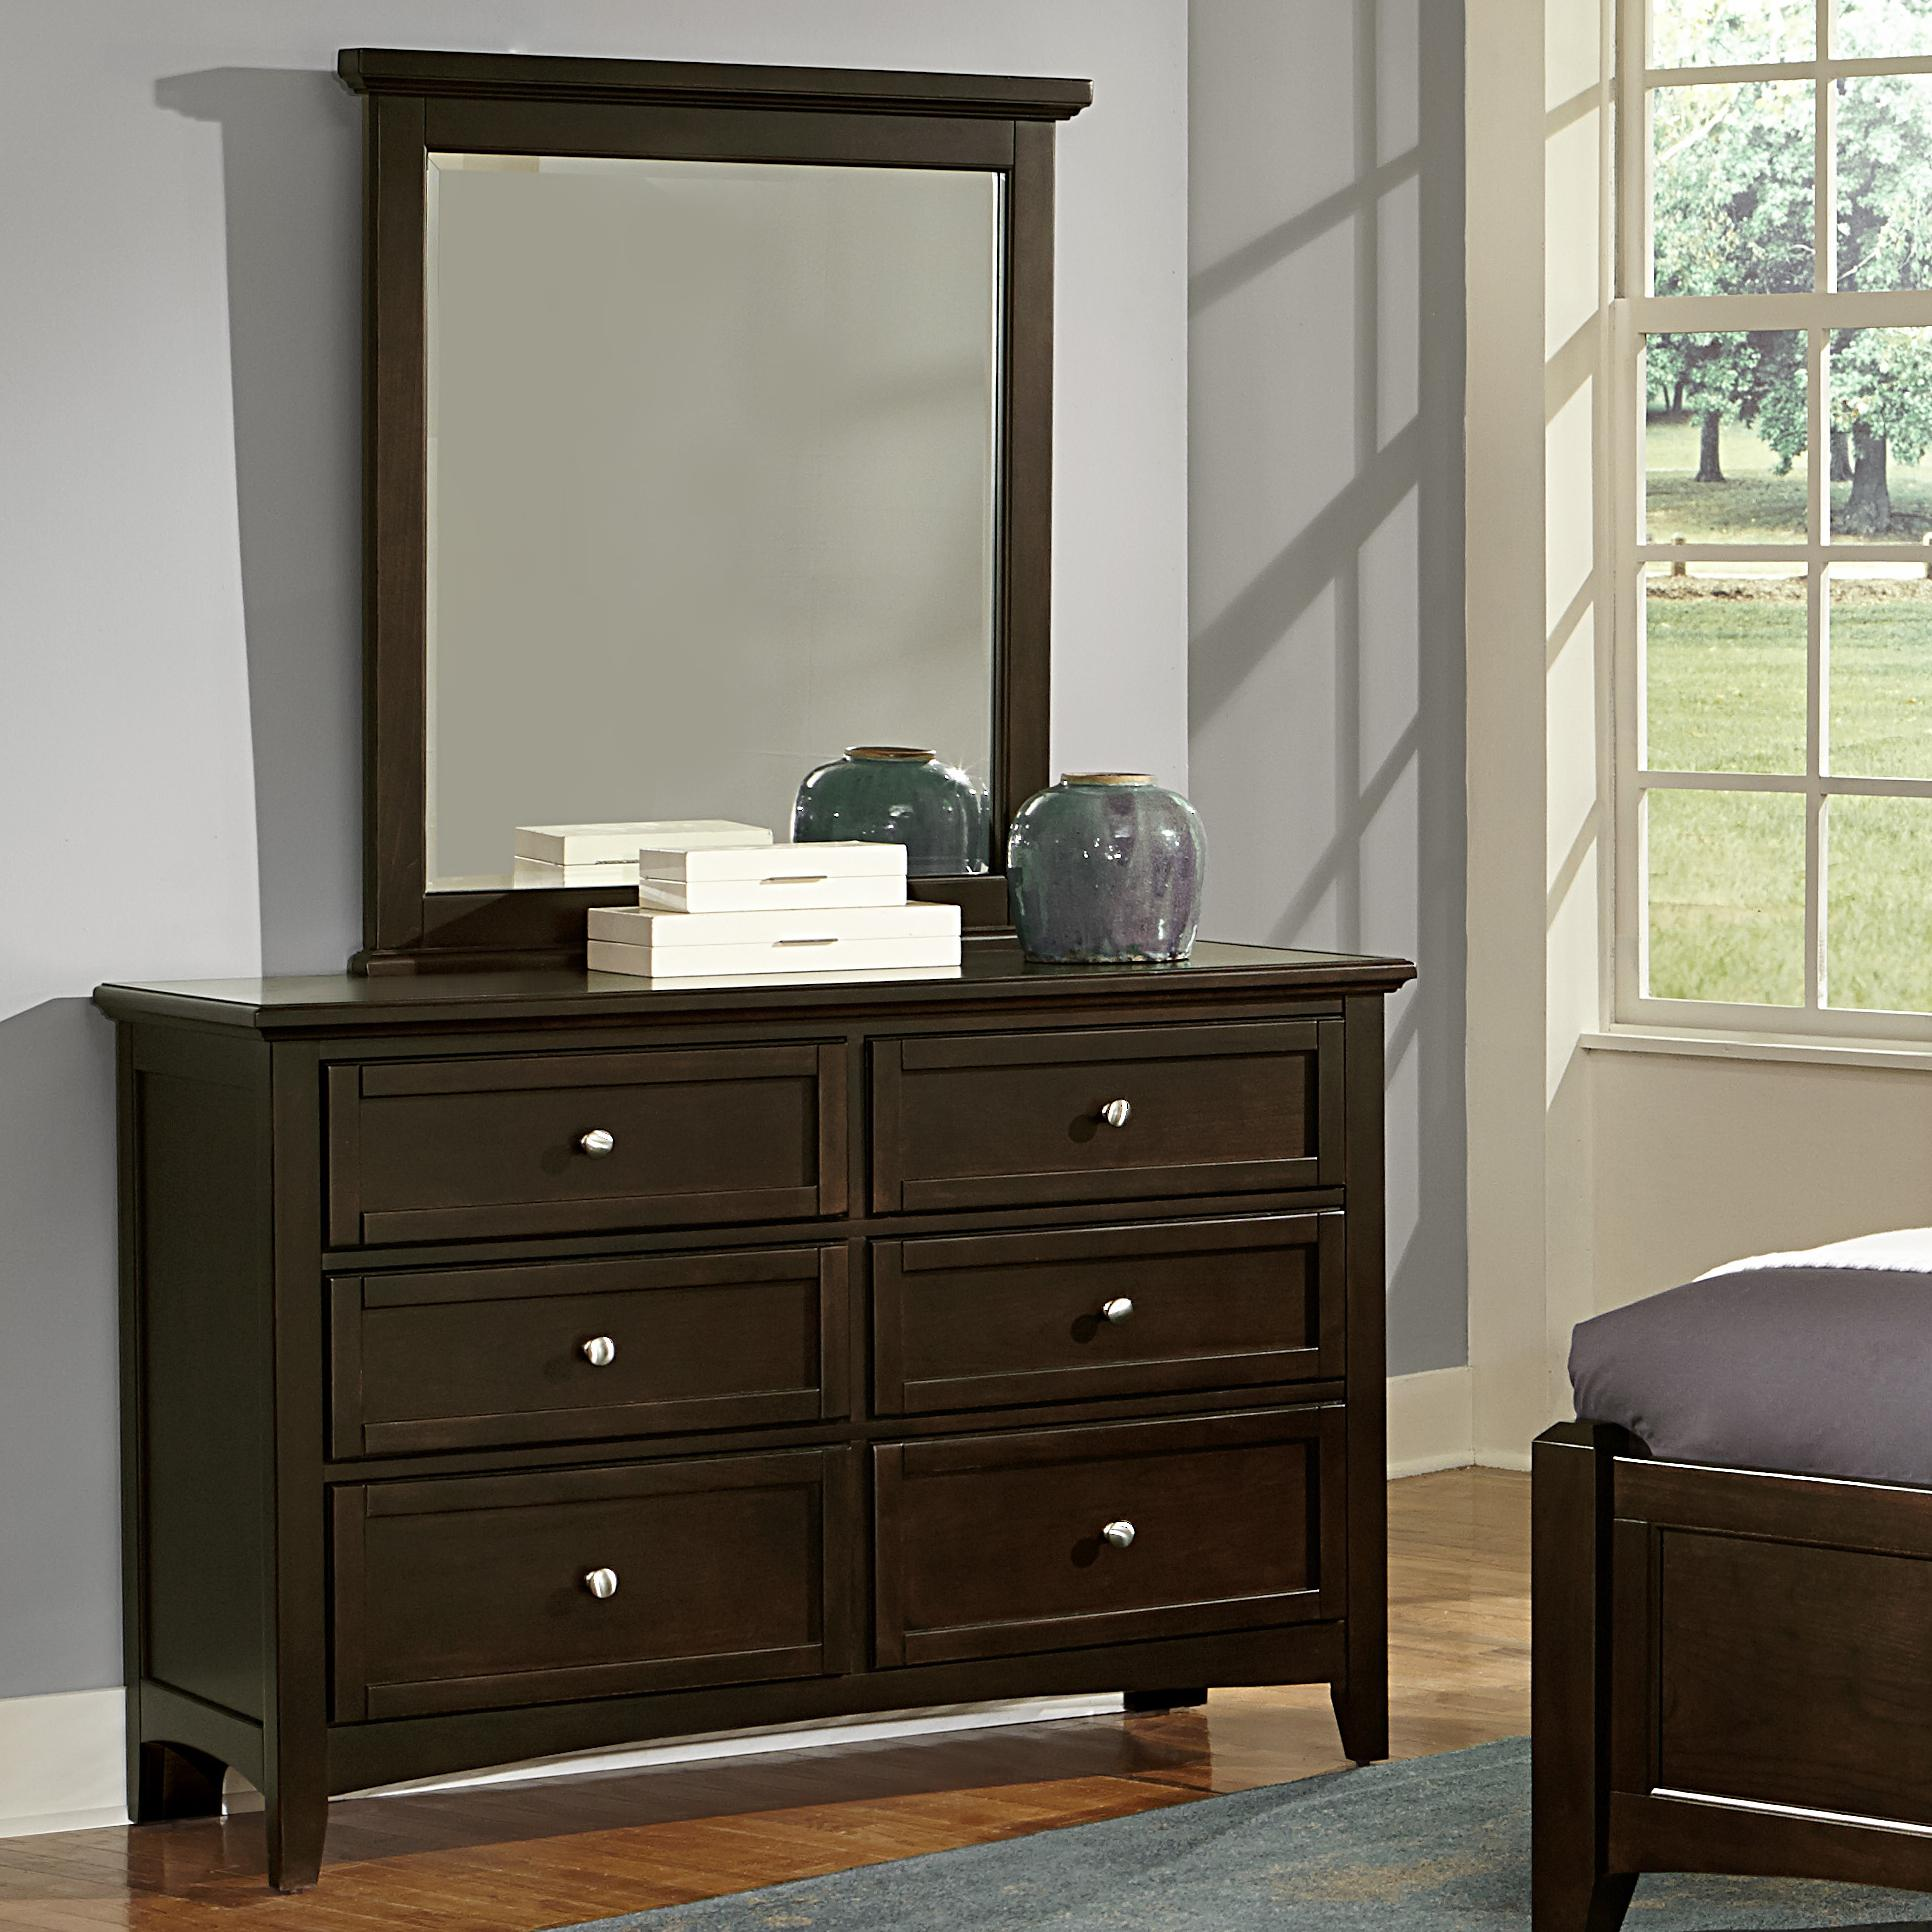 Bonanza Double Dresser & Small Landscape Mirror by Vaughan Bassett at Wilcox Furniture